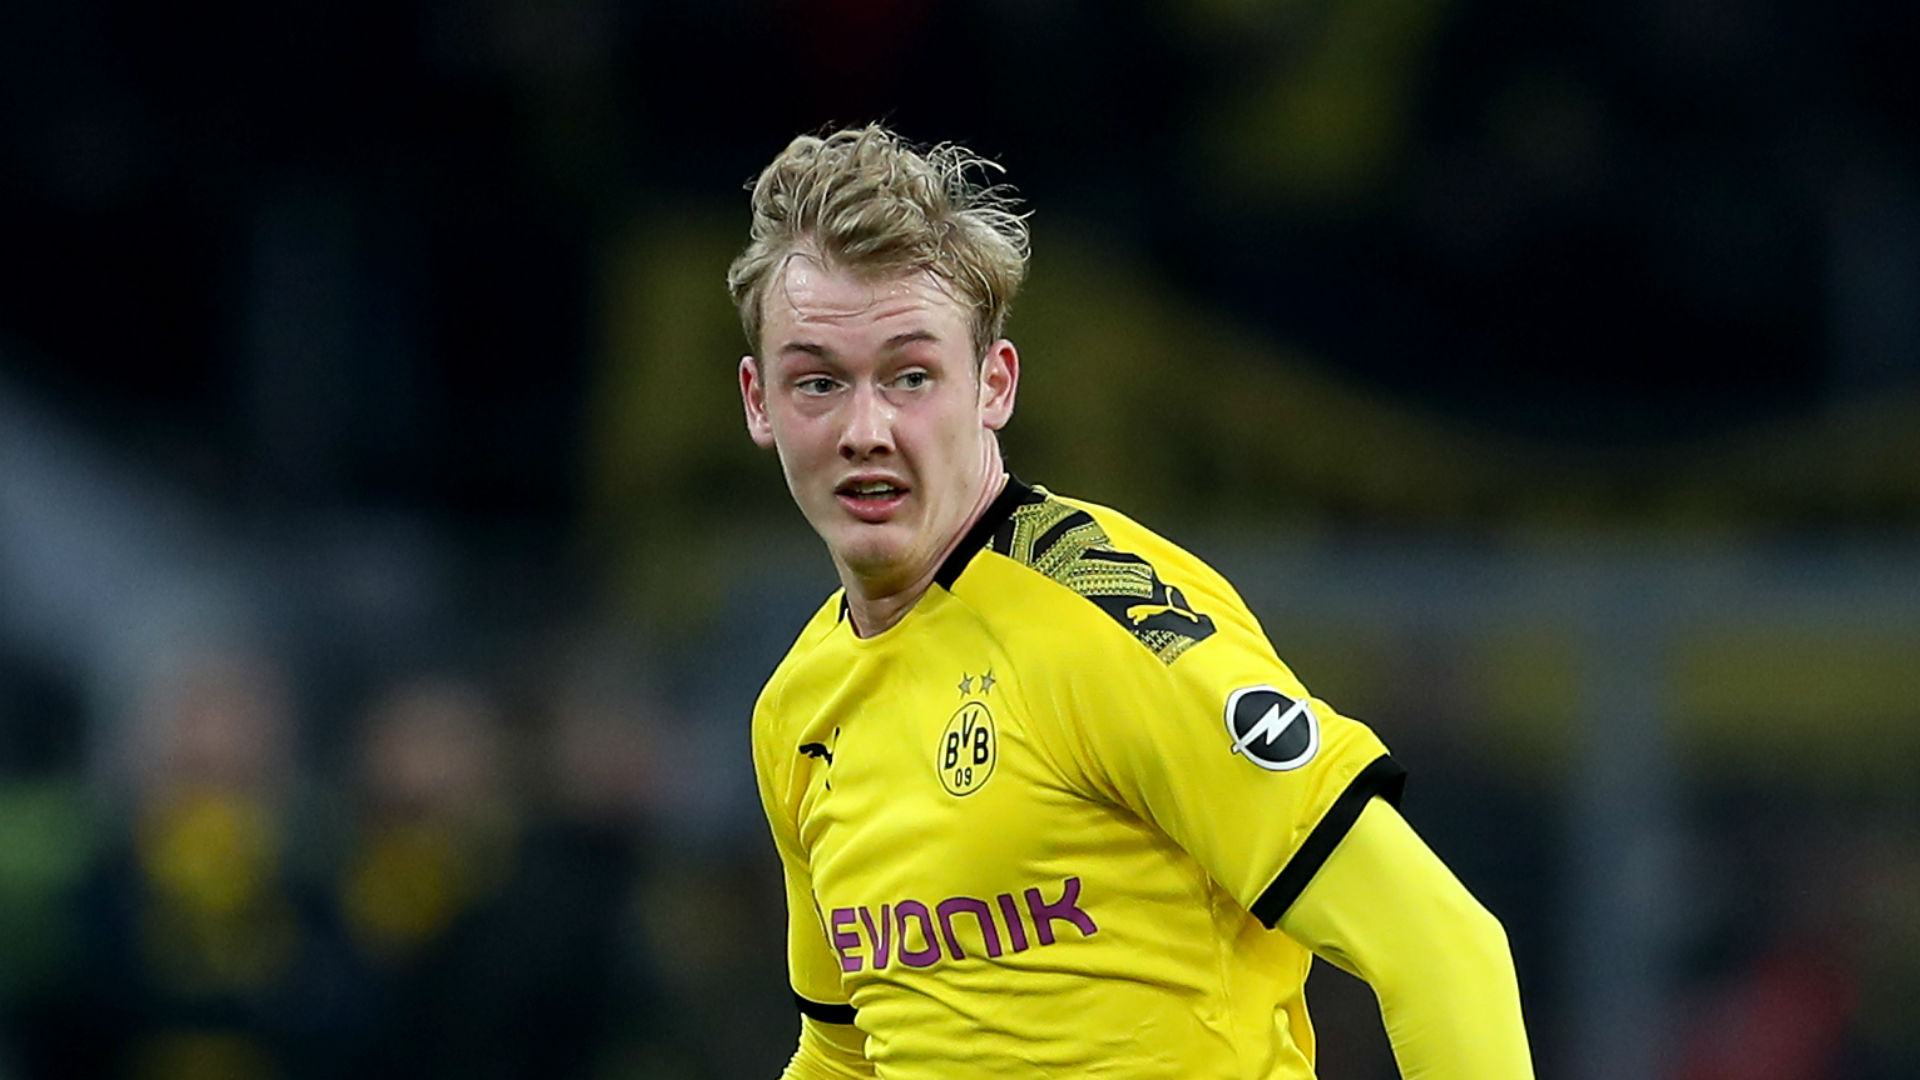 Dortmund's Brandt sprains ankle ahead of Champions League clash with PSG